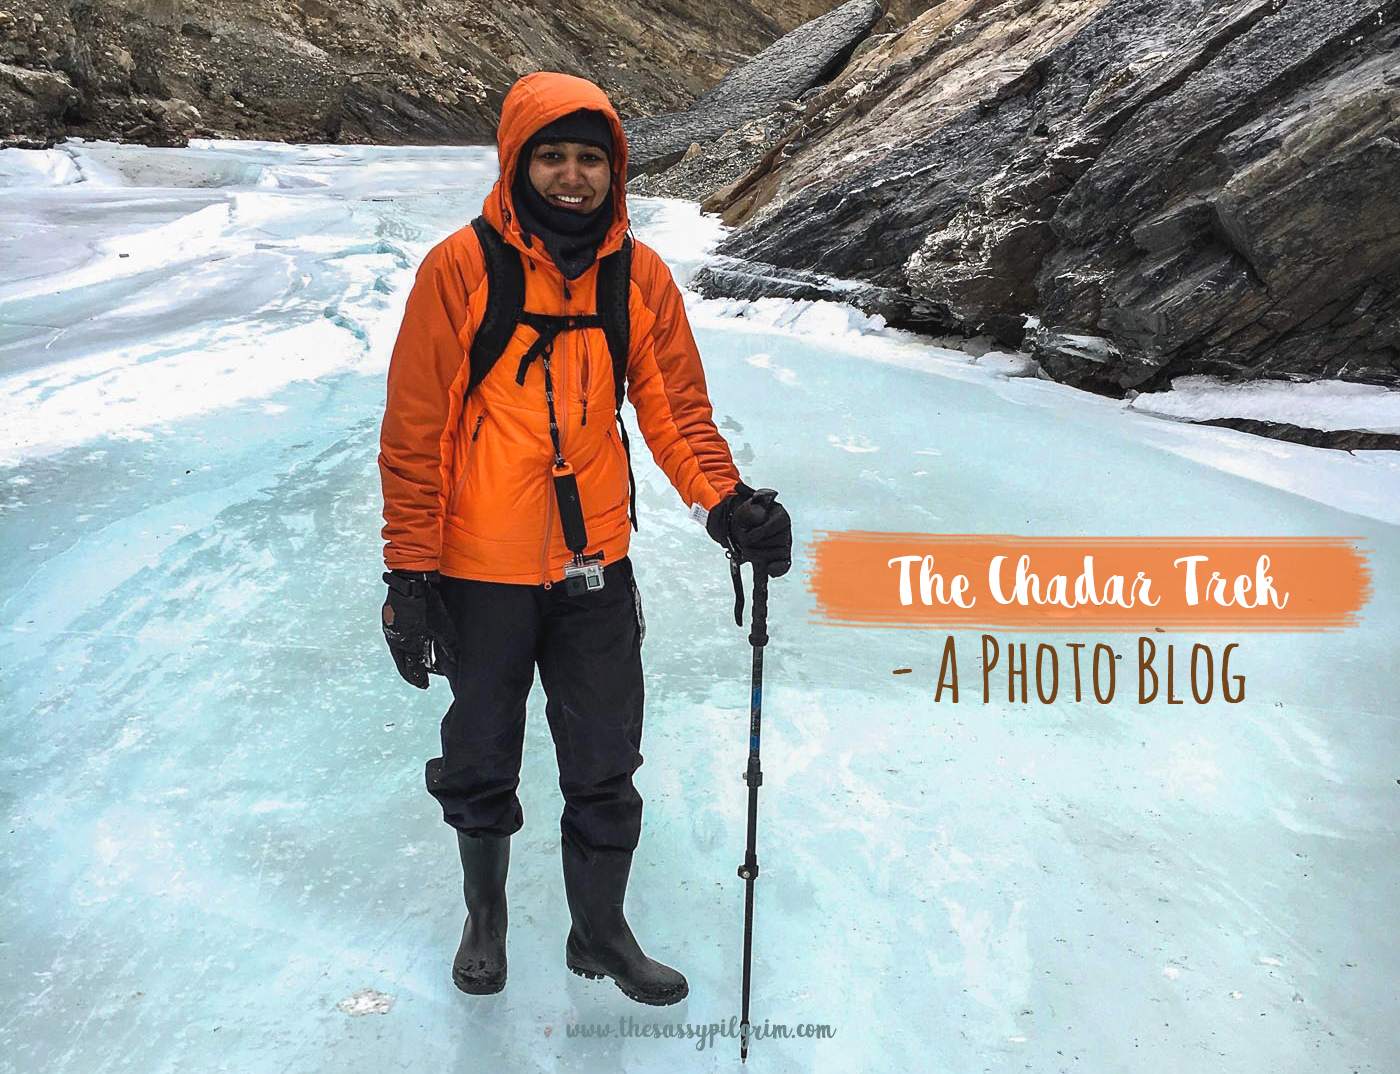 THE CHADAR TREK – A PHOTO BLOG